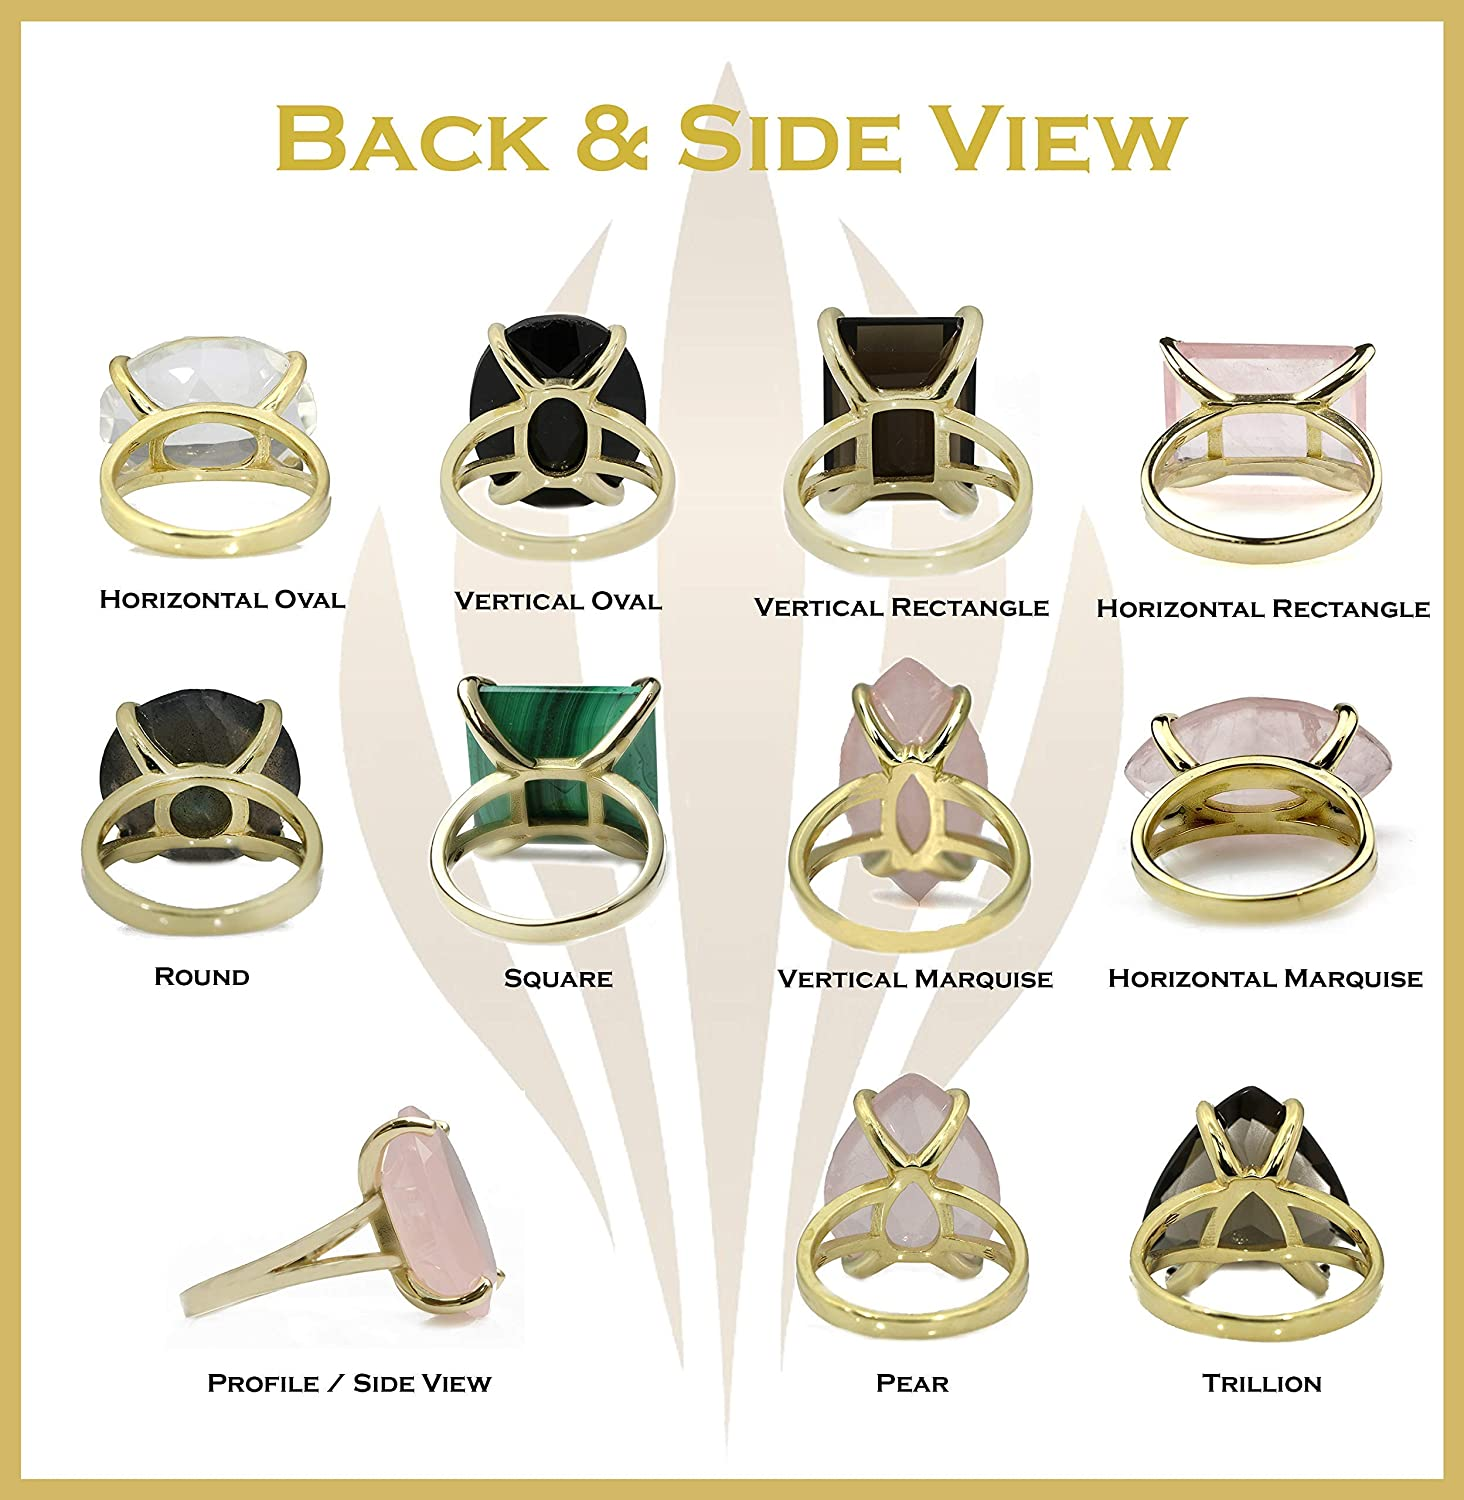 Sister with Jewelry Box Anemone Jewelry Womens 14k Gold Rings Fashionable Semi Precious Stone Rings Gifts for Wife Mom Vibrant Amethyst Jewelry Ring in Double Band